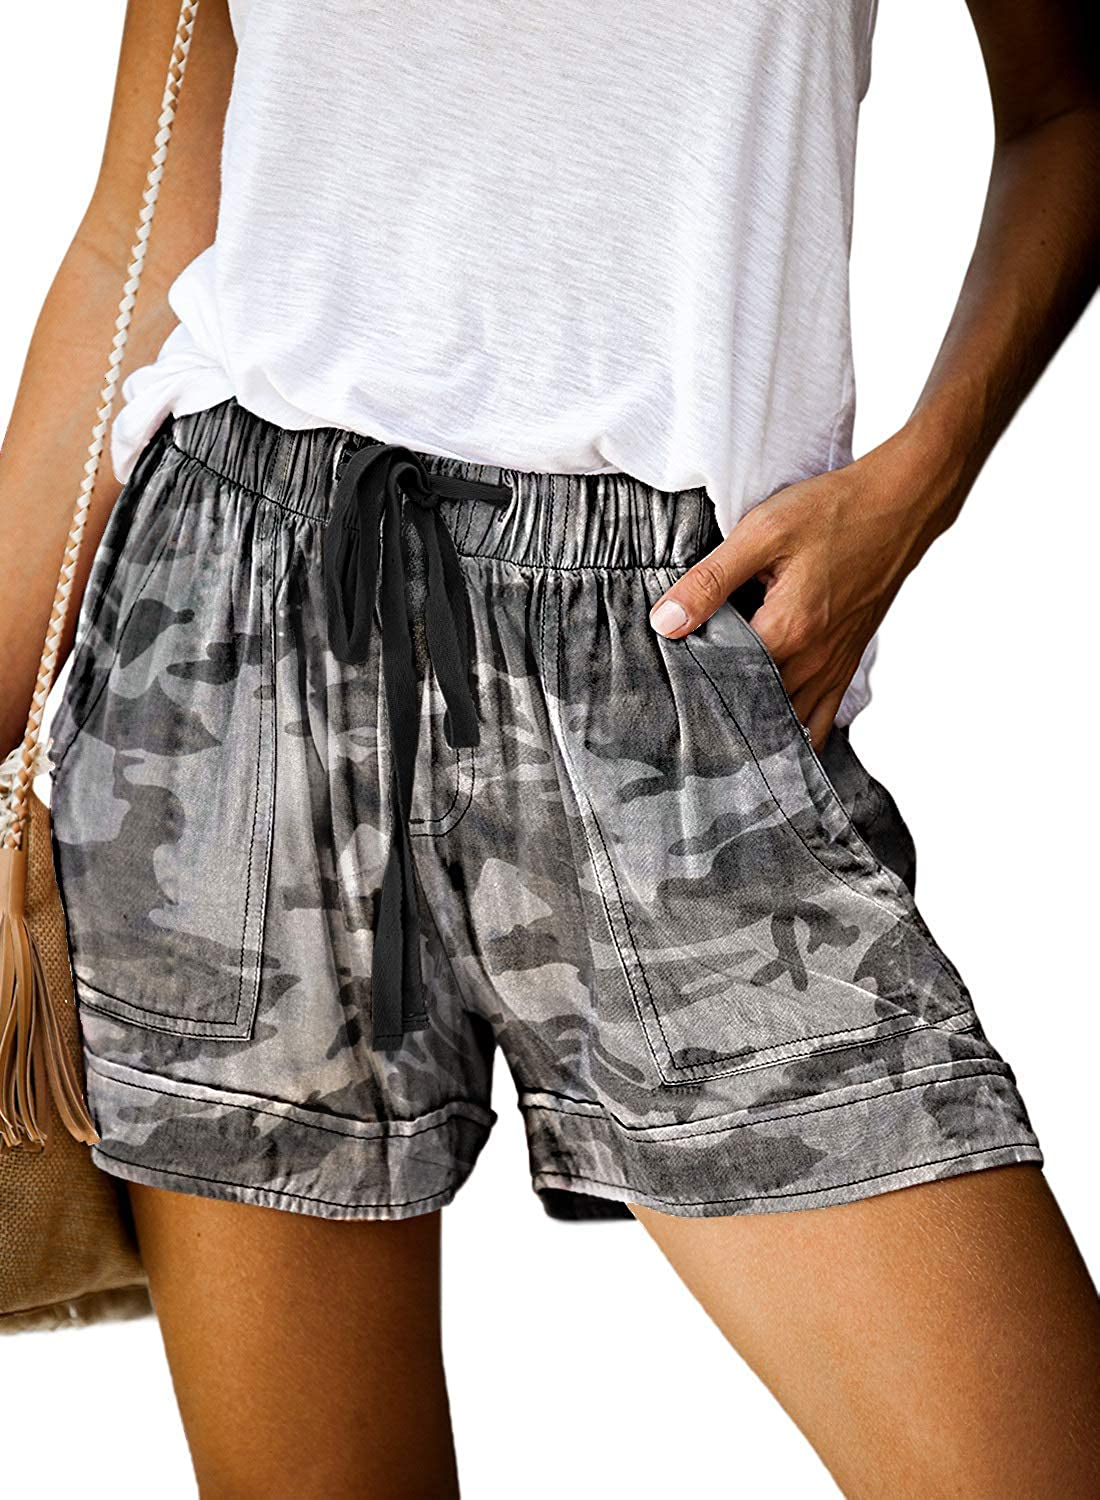 Uusollecy Time sale Women's Casual Shorts Waist Elastic Drawstring Limited price